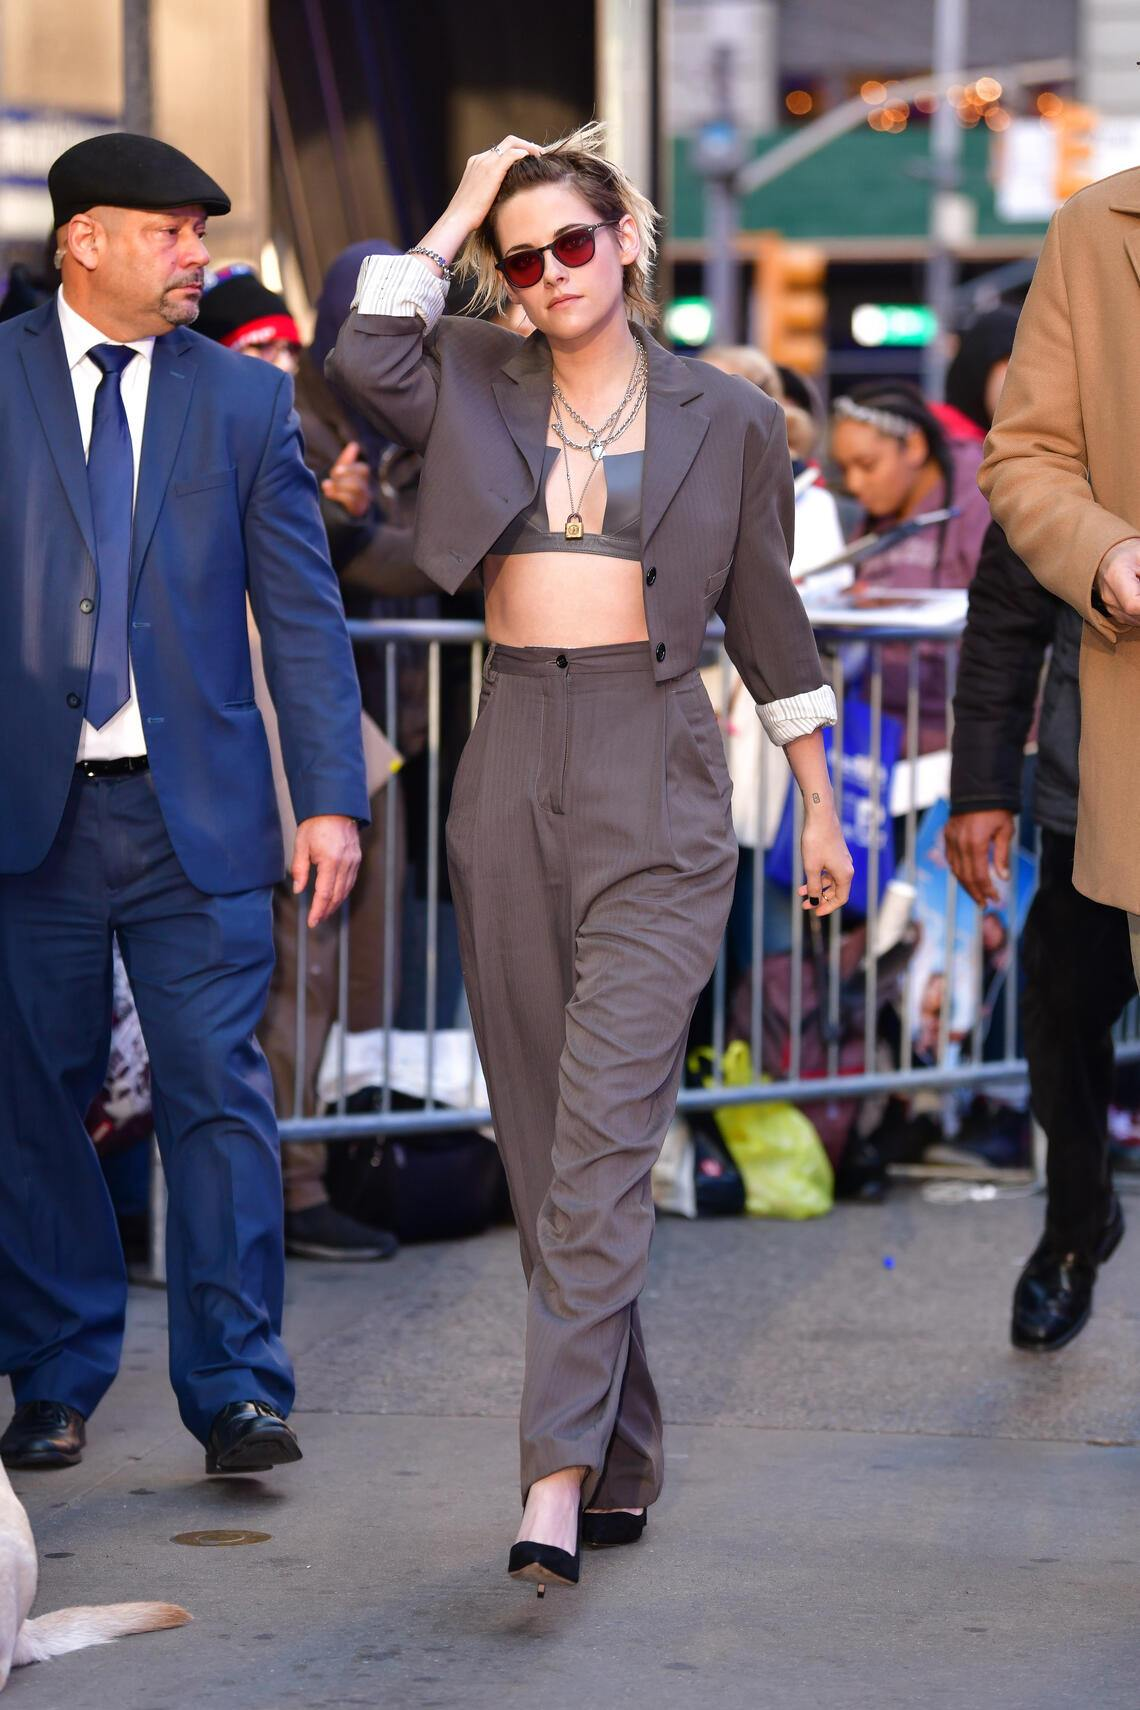 """NEW YORK, NY - NOVEMBER 06: Kristen Stewart visits ABC's """"Good Morning America"""" in Times Square on November 6, 2019 in New York City.  (Photo by James Devaney/GC Images)"""